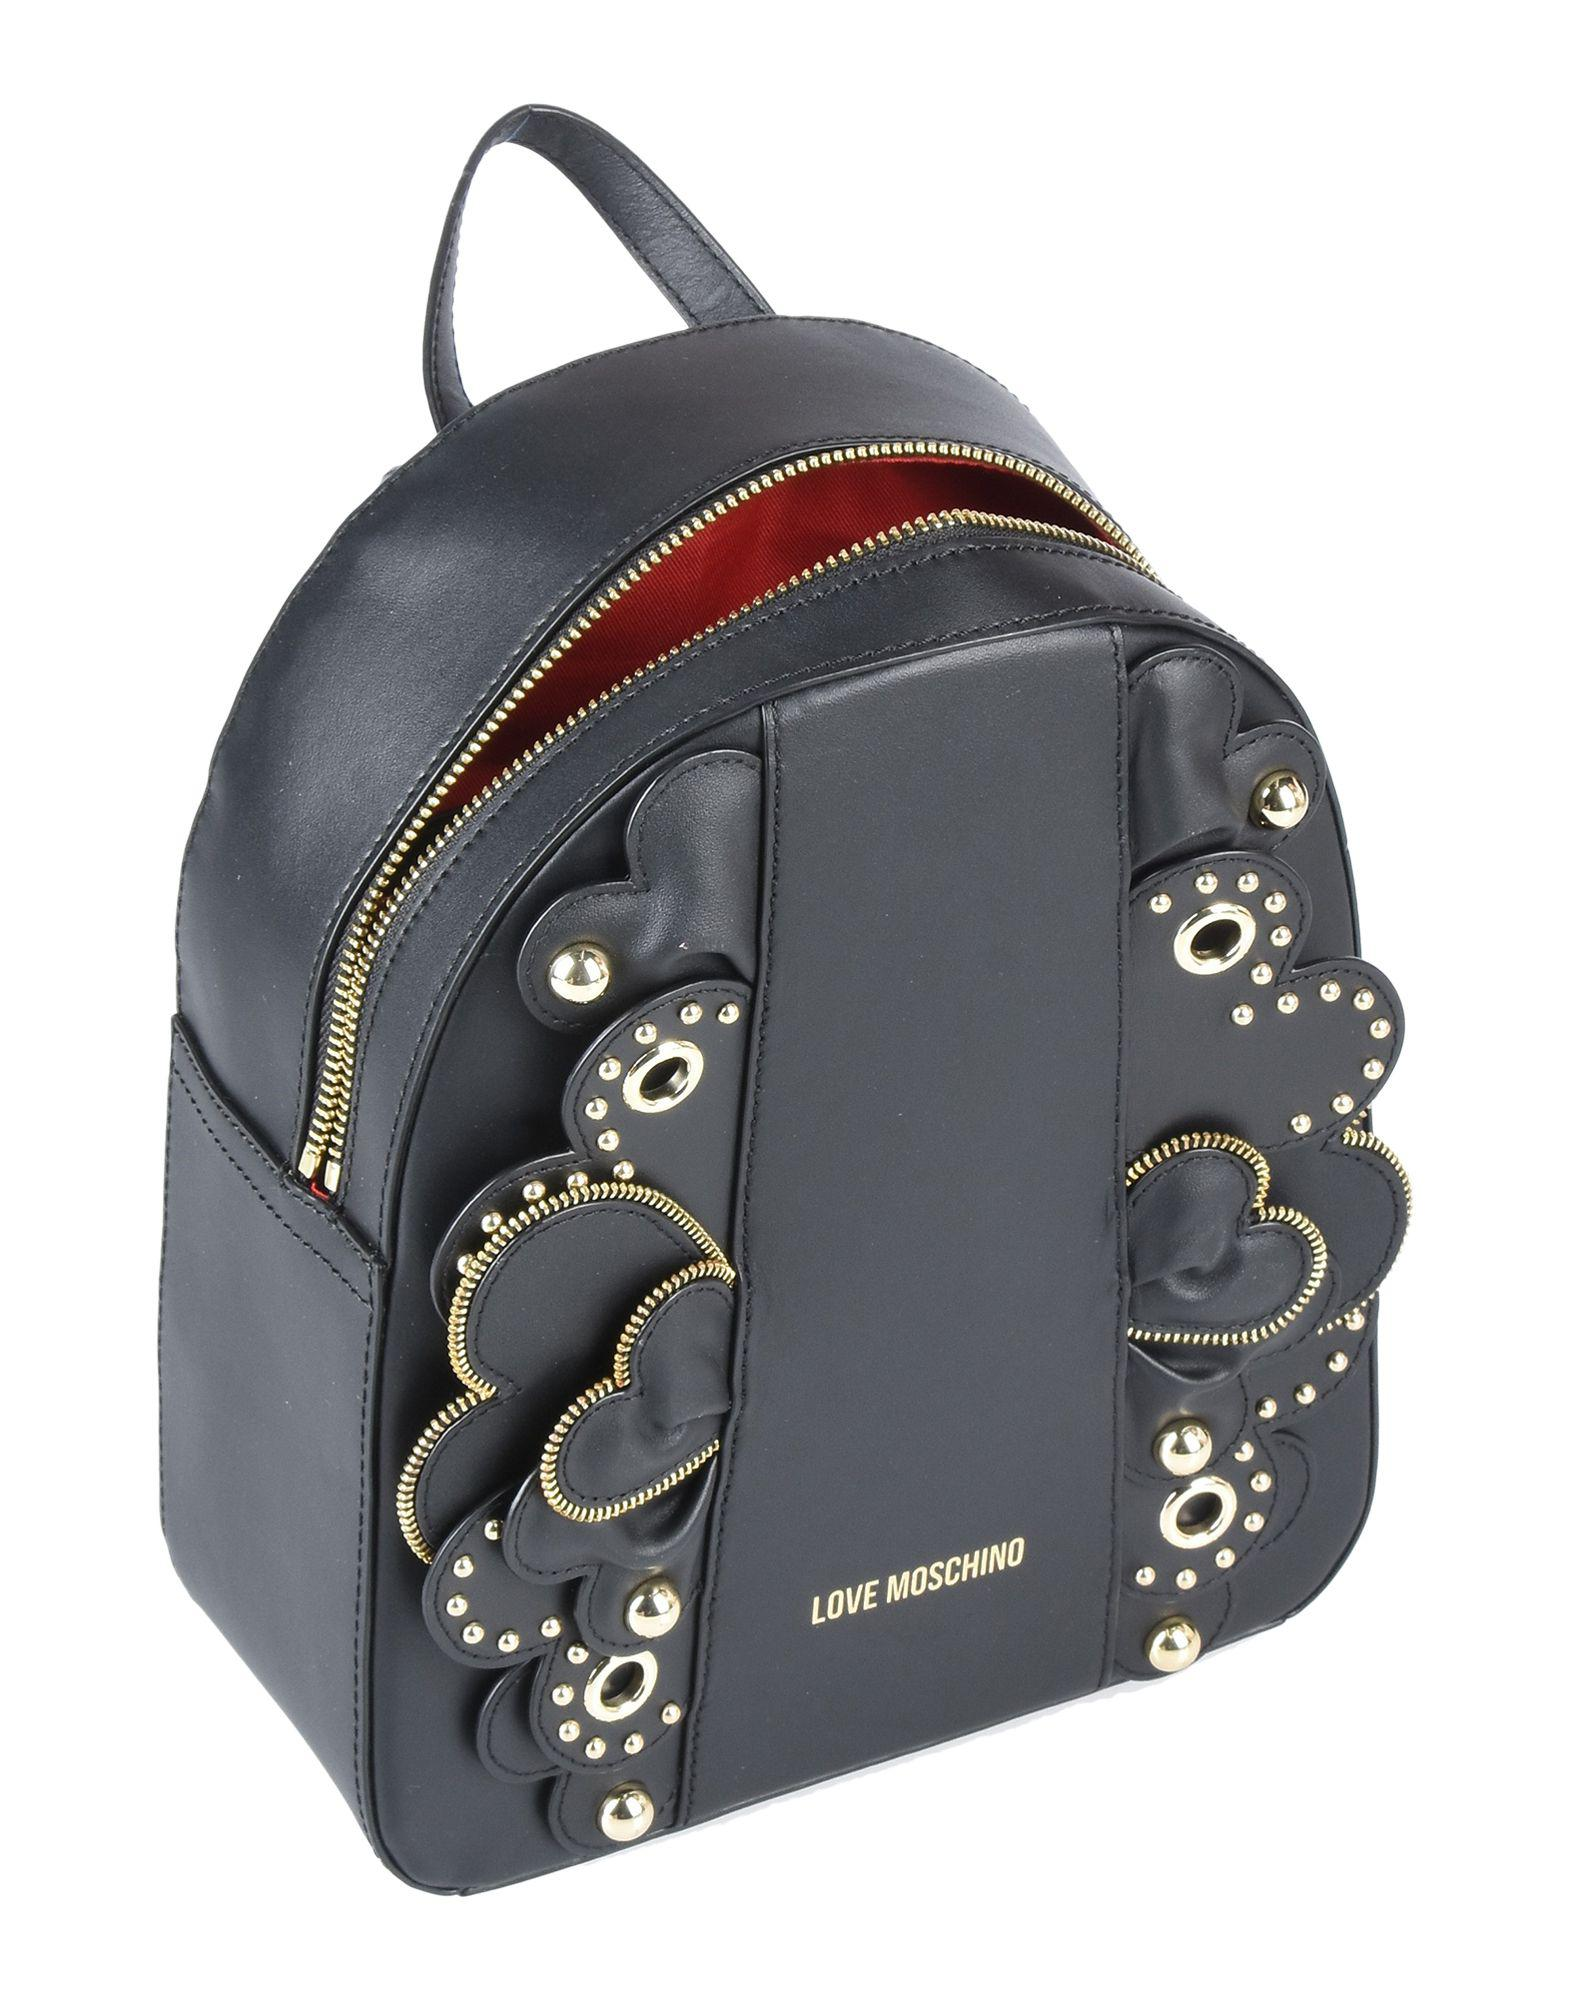 ff4c8fa1f1090 Lyst - Love Moschino Backpacks   Fanny Packs in Black